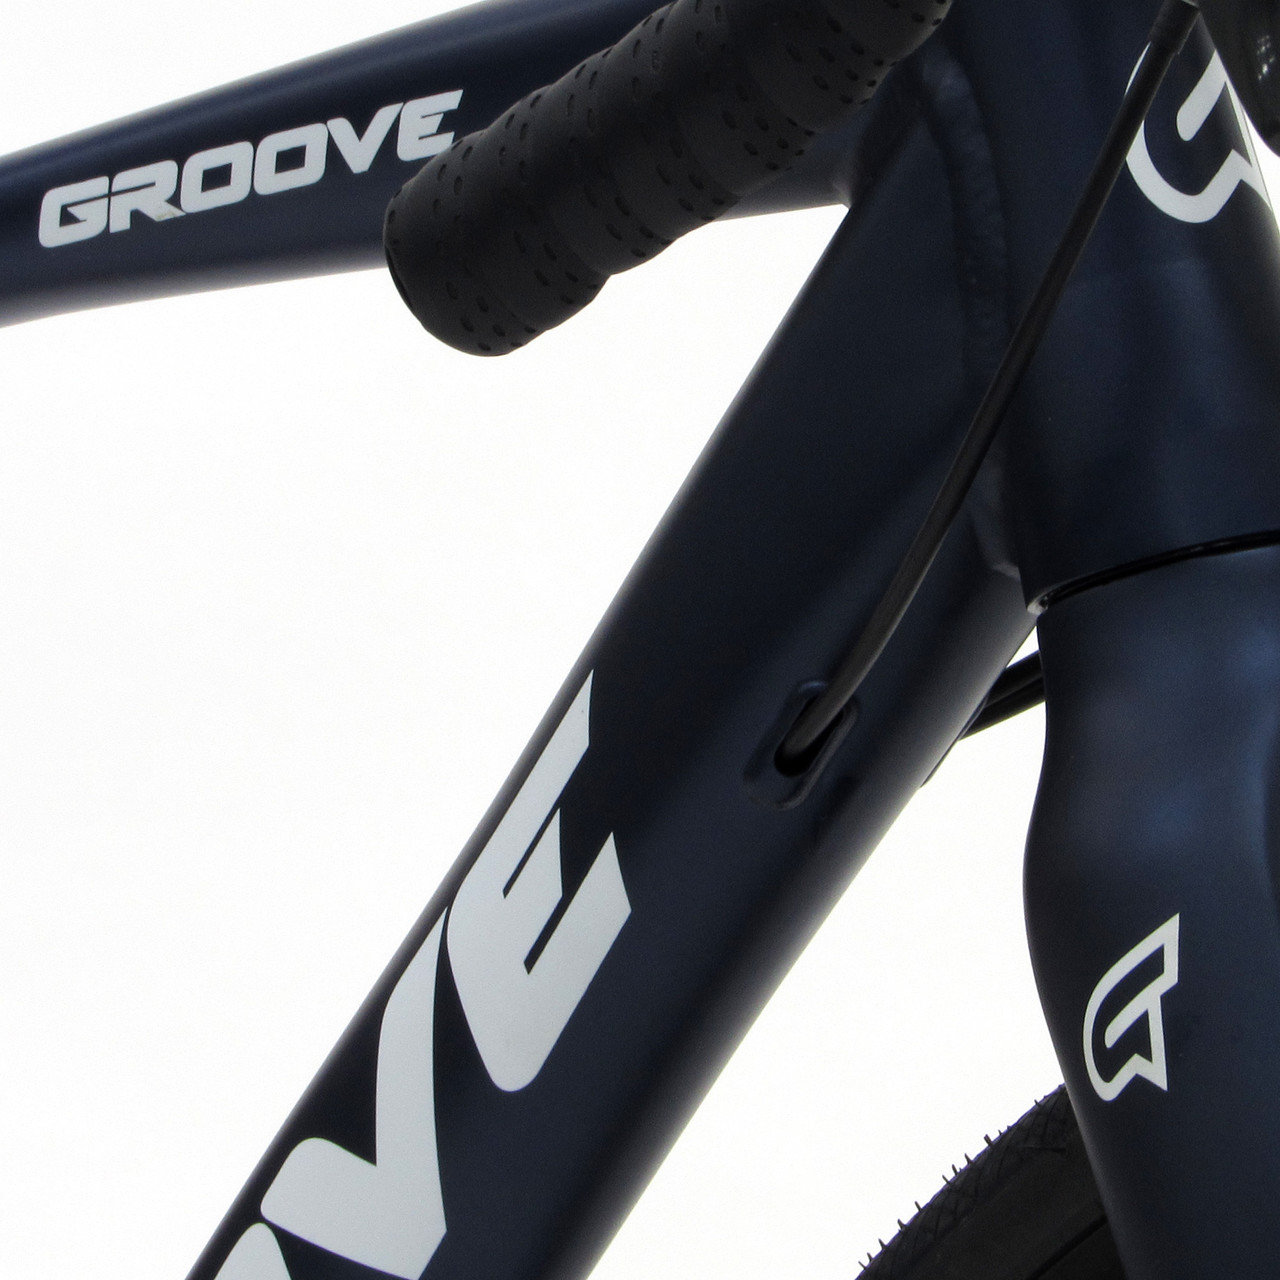 BICICLETA ROAD GROOVE OVERDRIVE 70 PP HD 20S AZUL/VM/BR (700.48.211.1810)